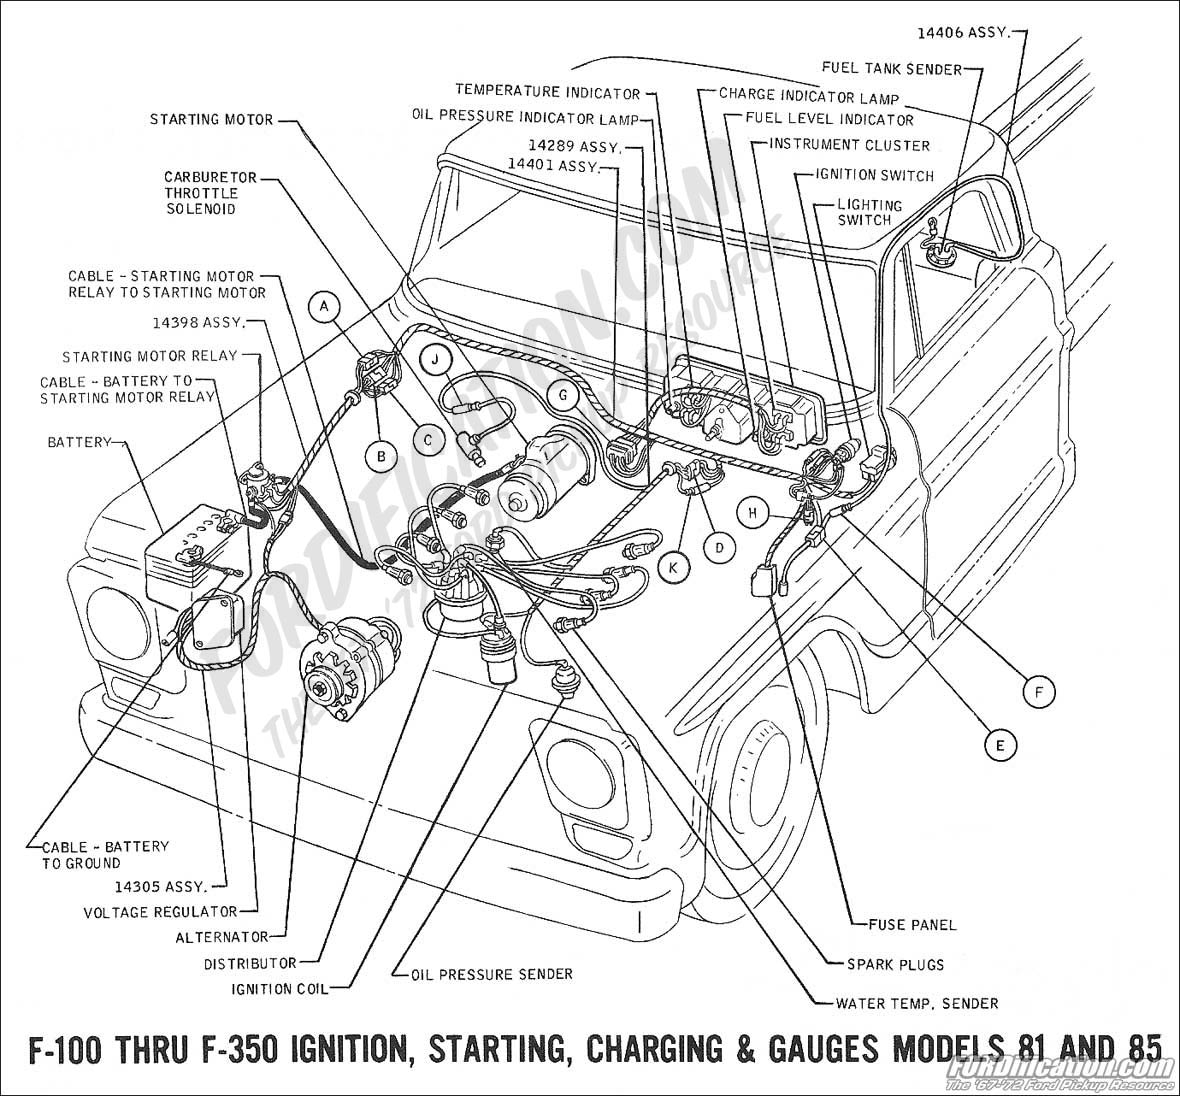 1968 Ford F100 Instrument Cluster Wiring Diagram Regulator For 1970 Chevelle Truck Technical Drawings And Schematics Section H Alternator